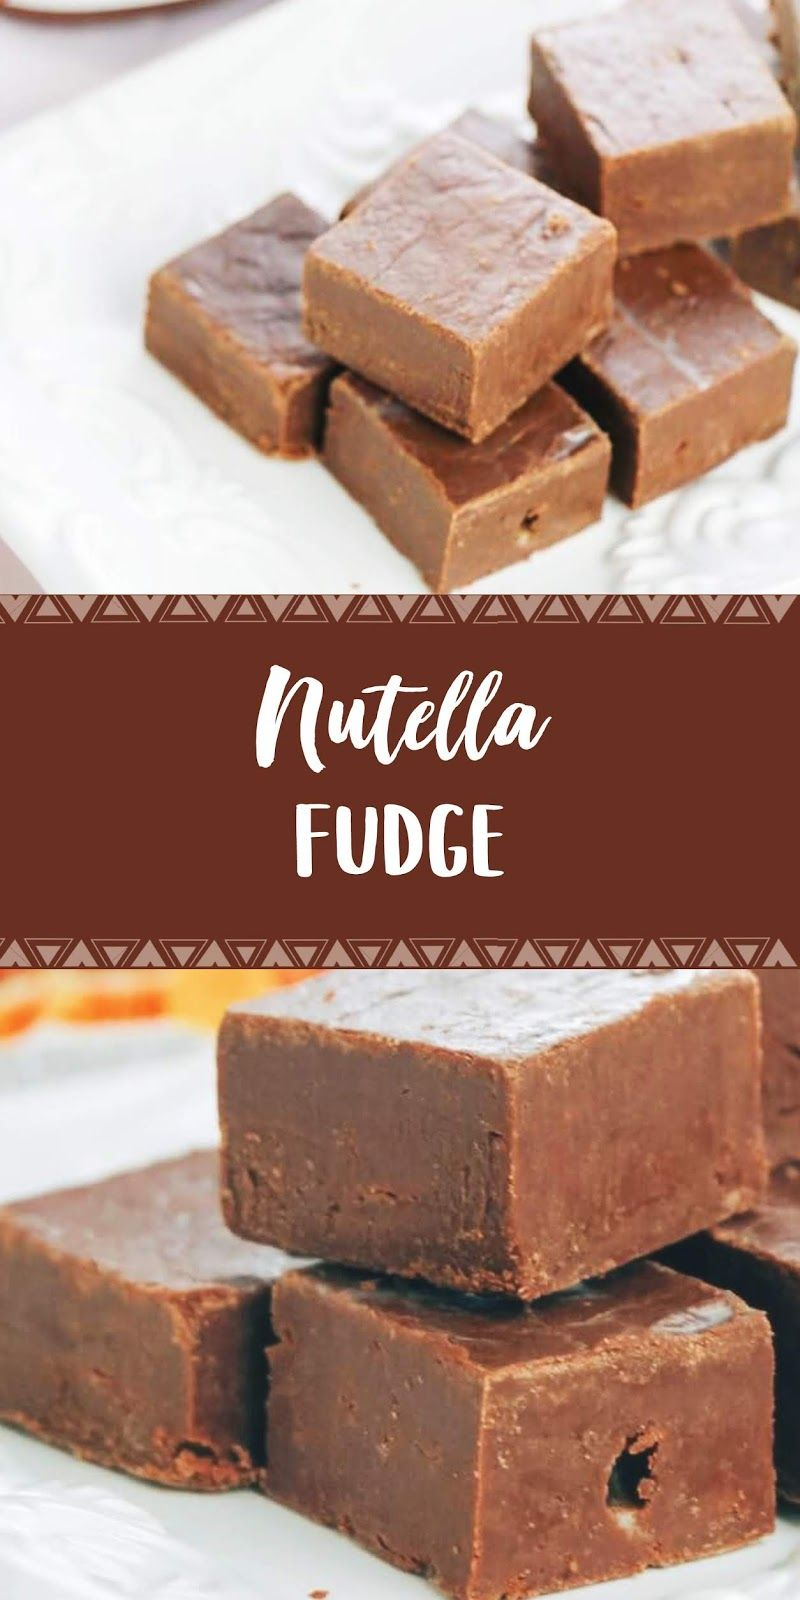 Nutella Fudge Only 3 Ingredients 3 For Dapur Simbah In 2020 Nutella Fudge Yummy Food Dessert Dessert Recipes